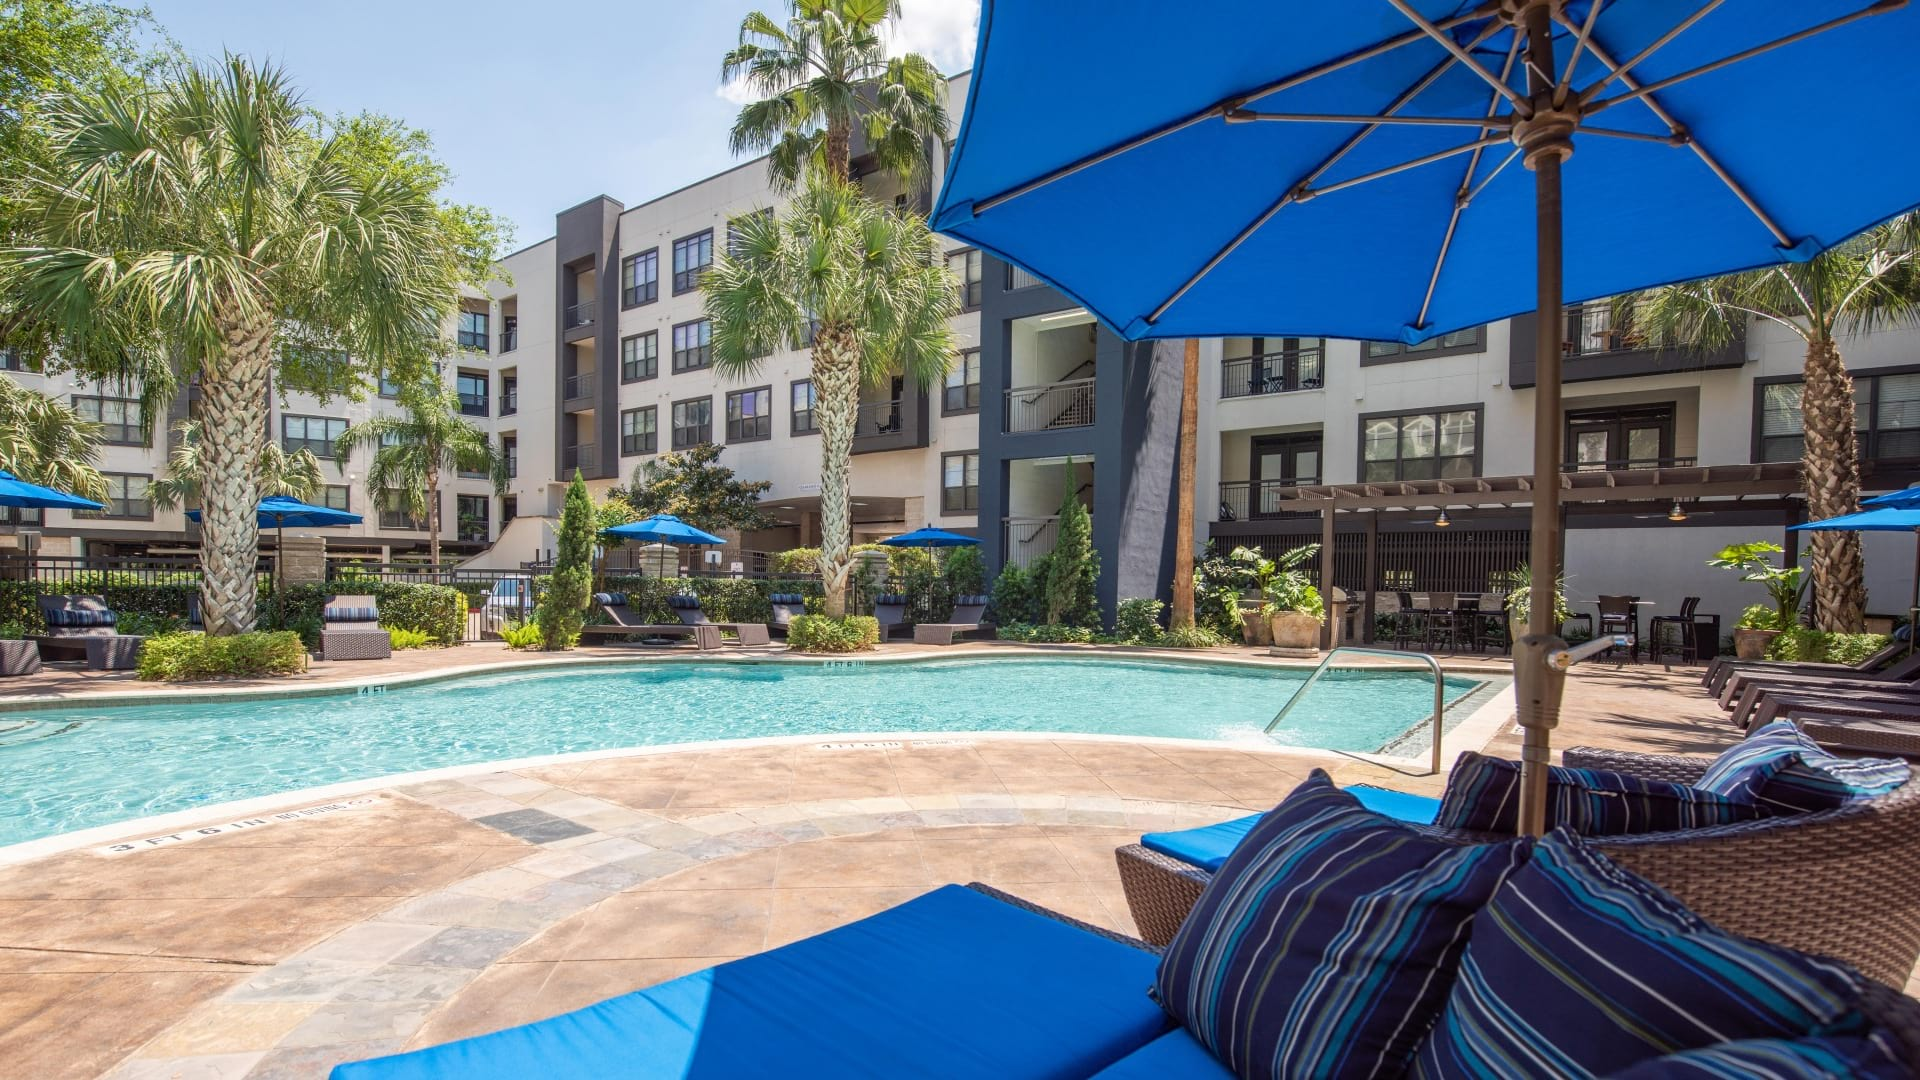 Midtown Houston apartment complex with pool